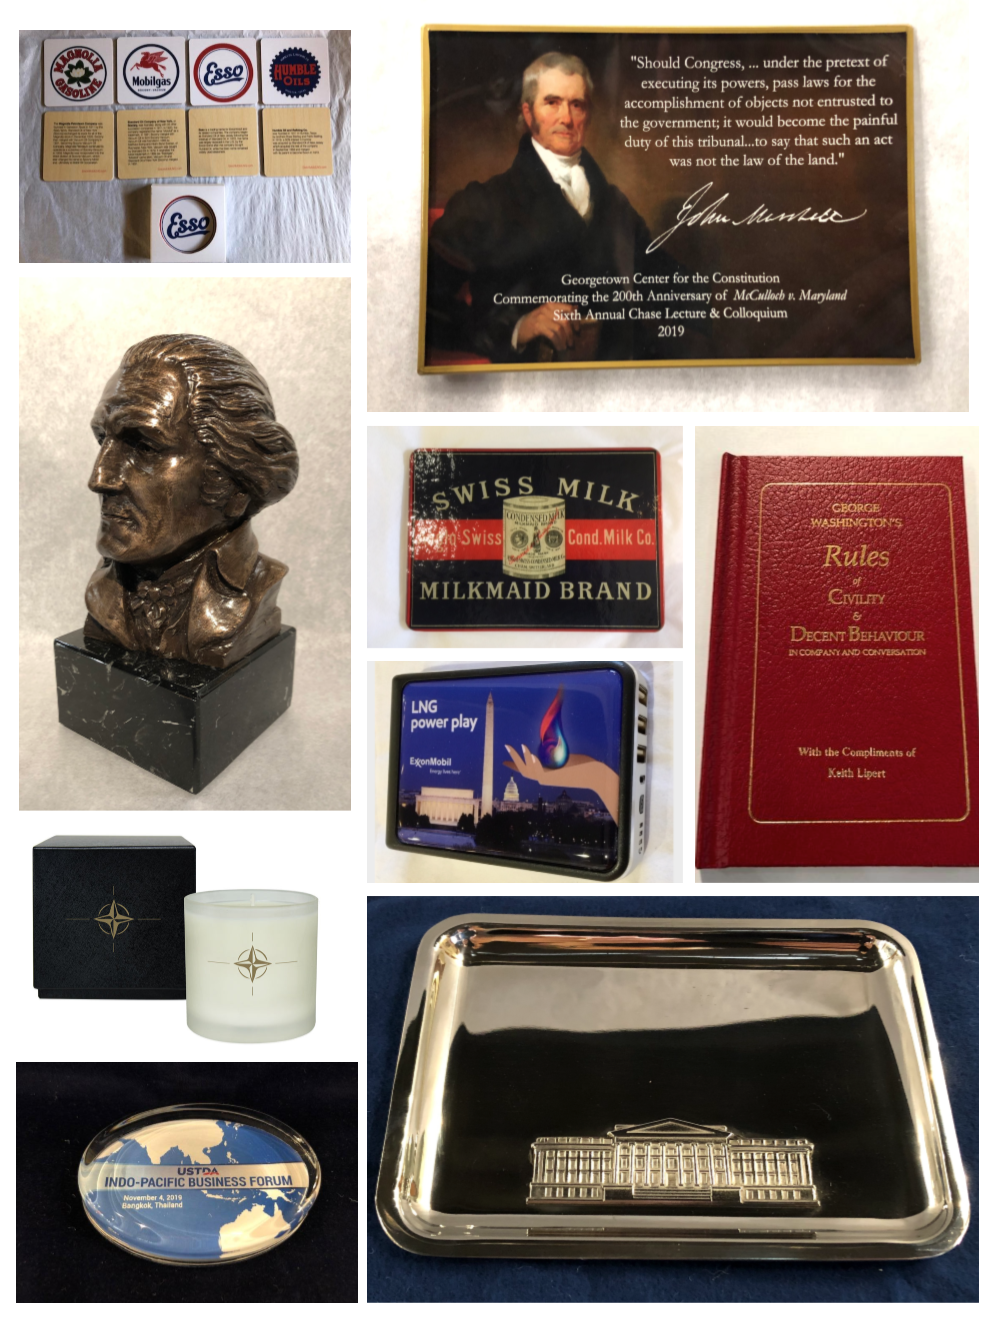 Last Minute Corporate Gift Ideas Keith Lipert Corporate Gifts